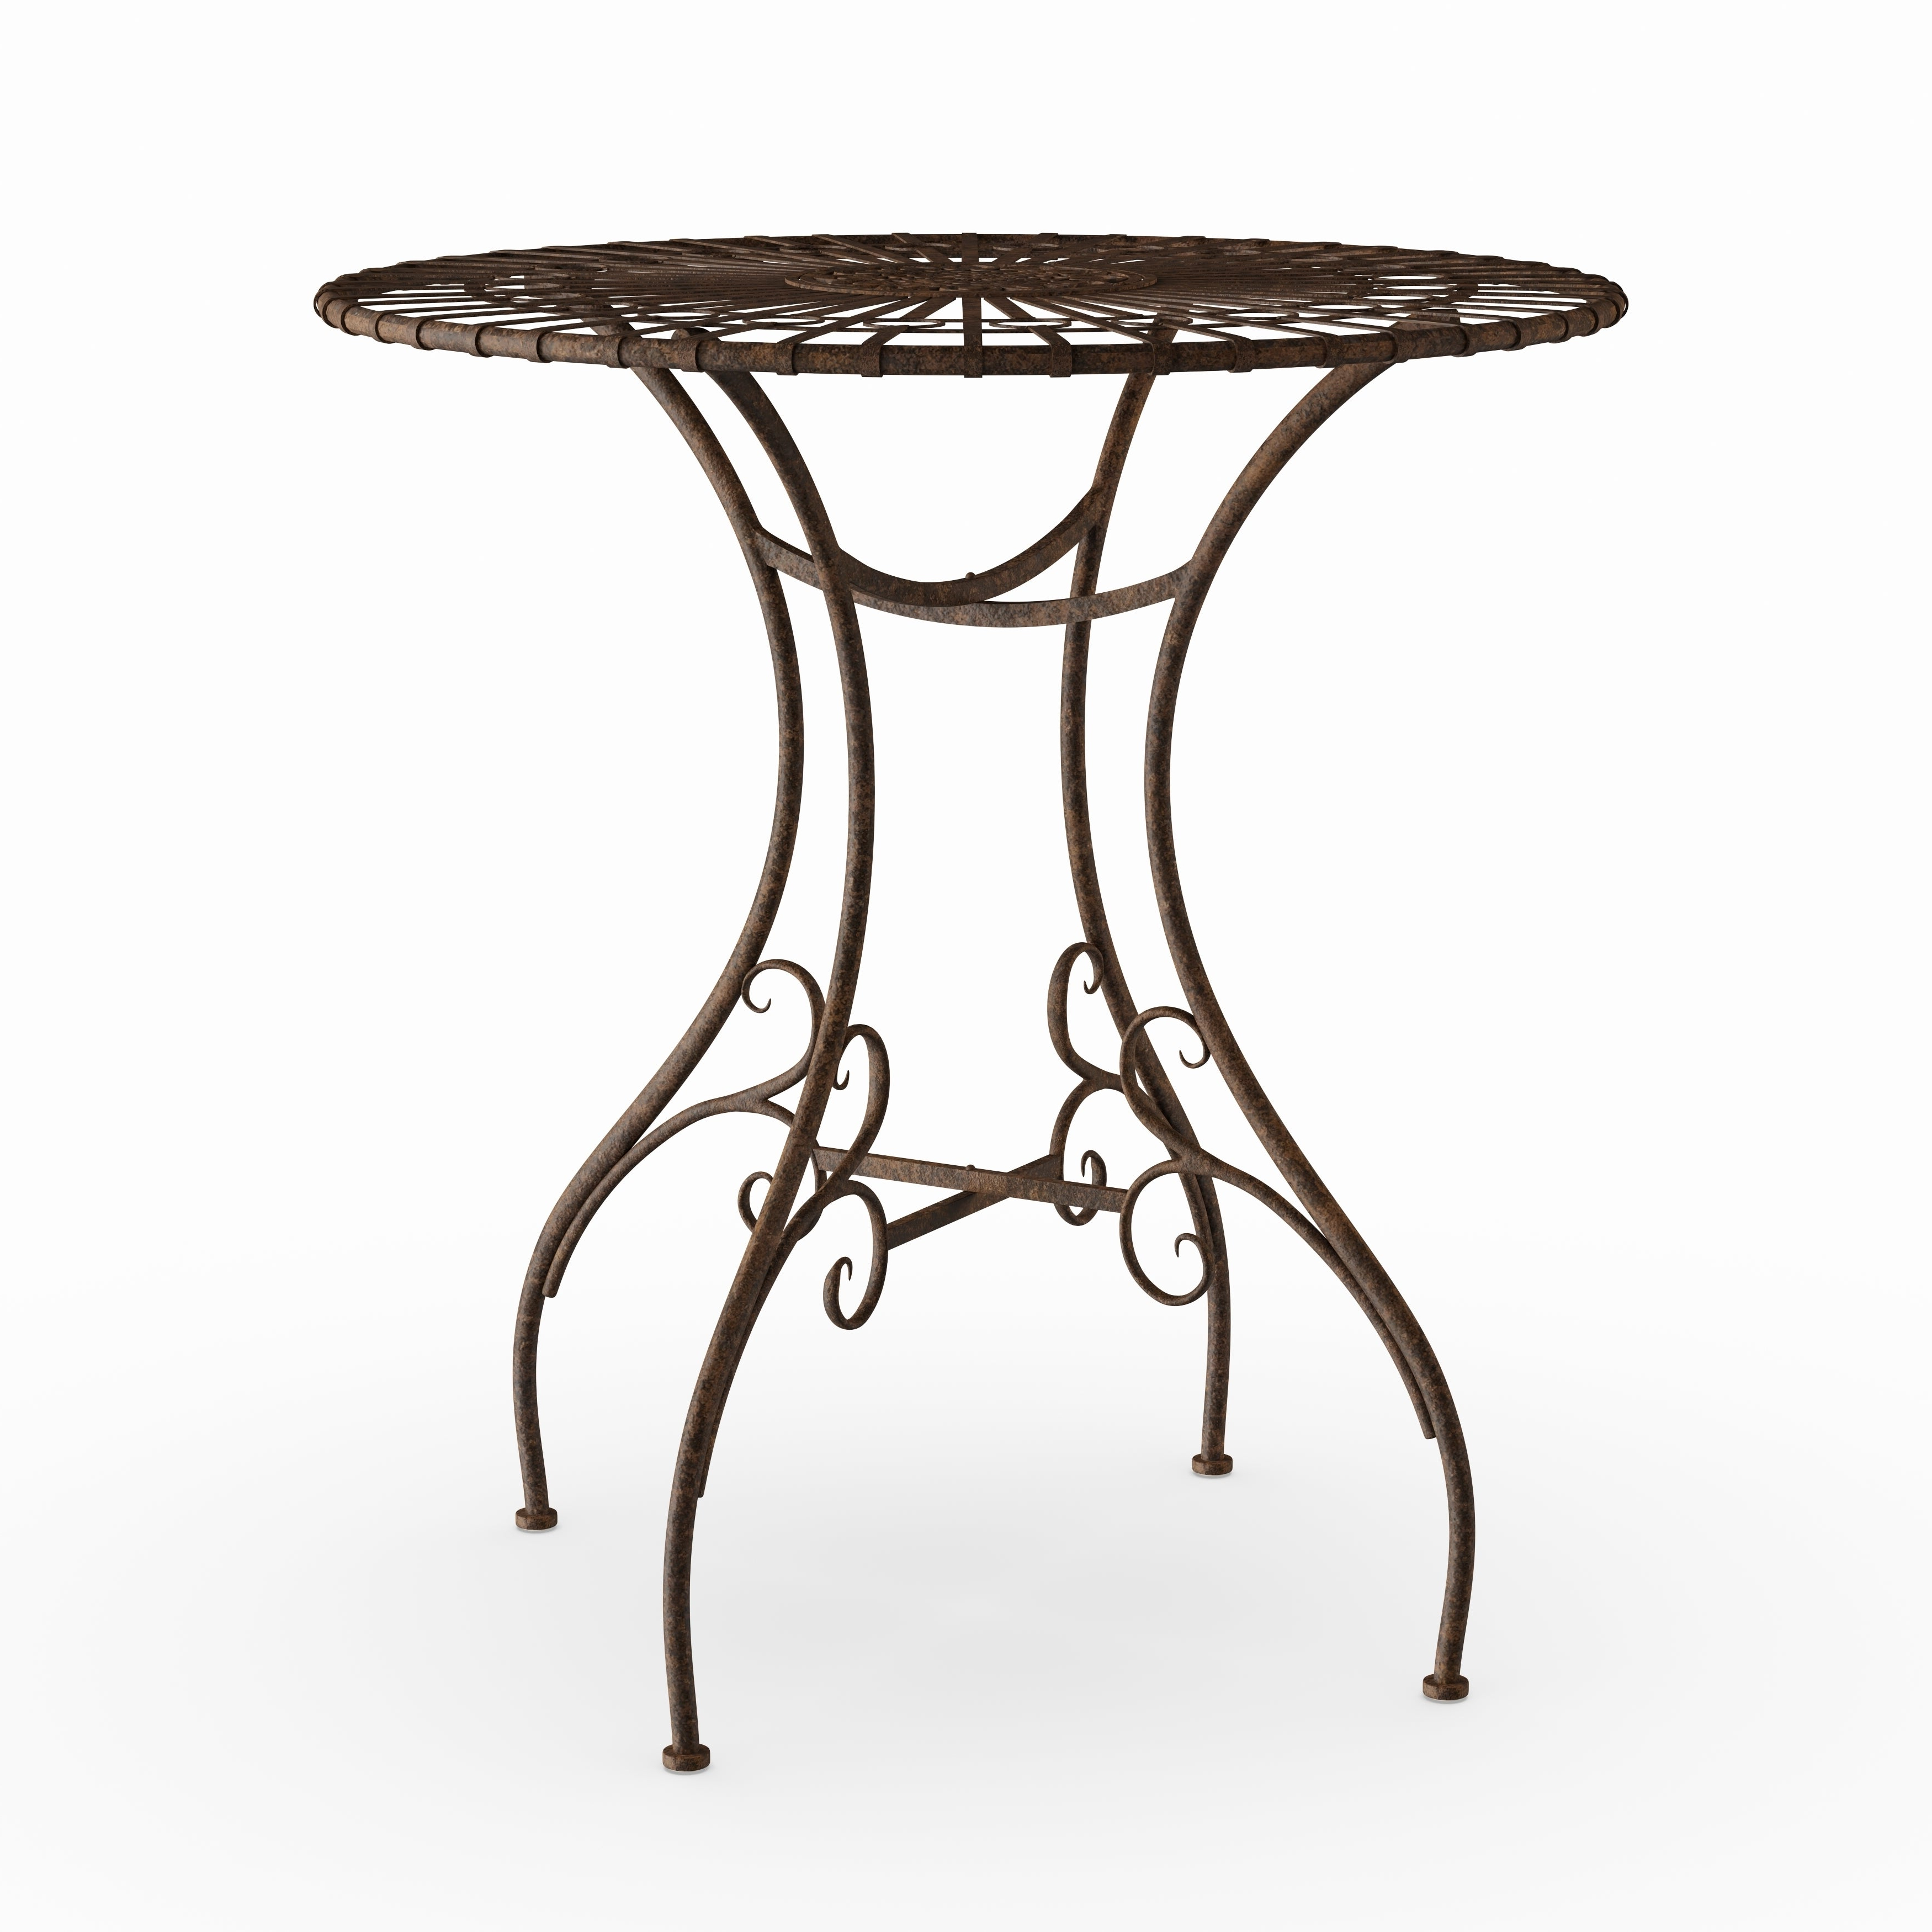 Handmade Rustic Rust Patina Garden Table (china) With Current Windell Square Cantilever Umbrellas (View 19 of 20)